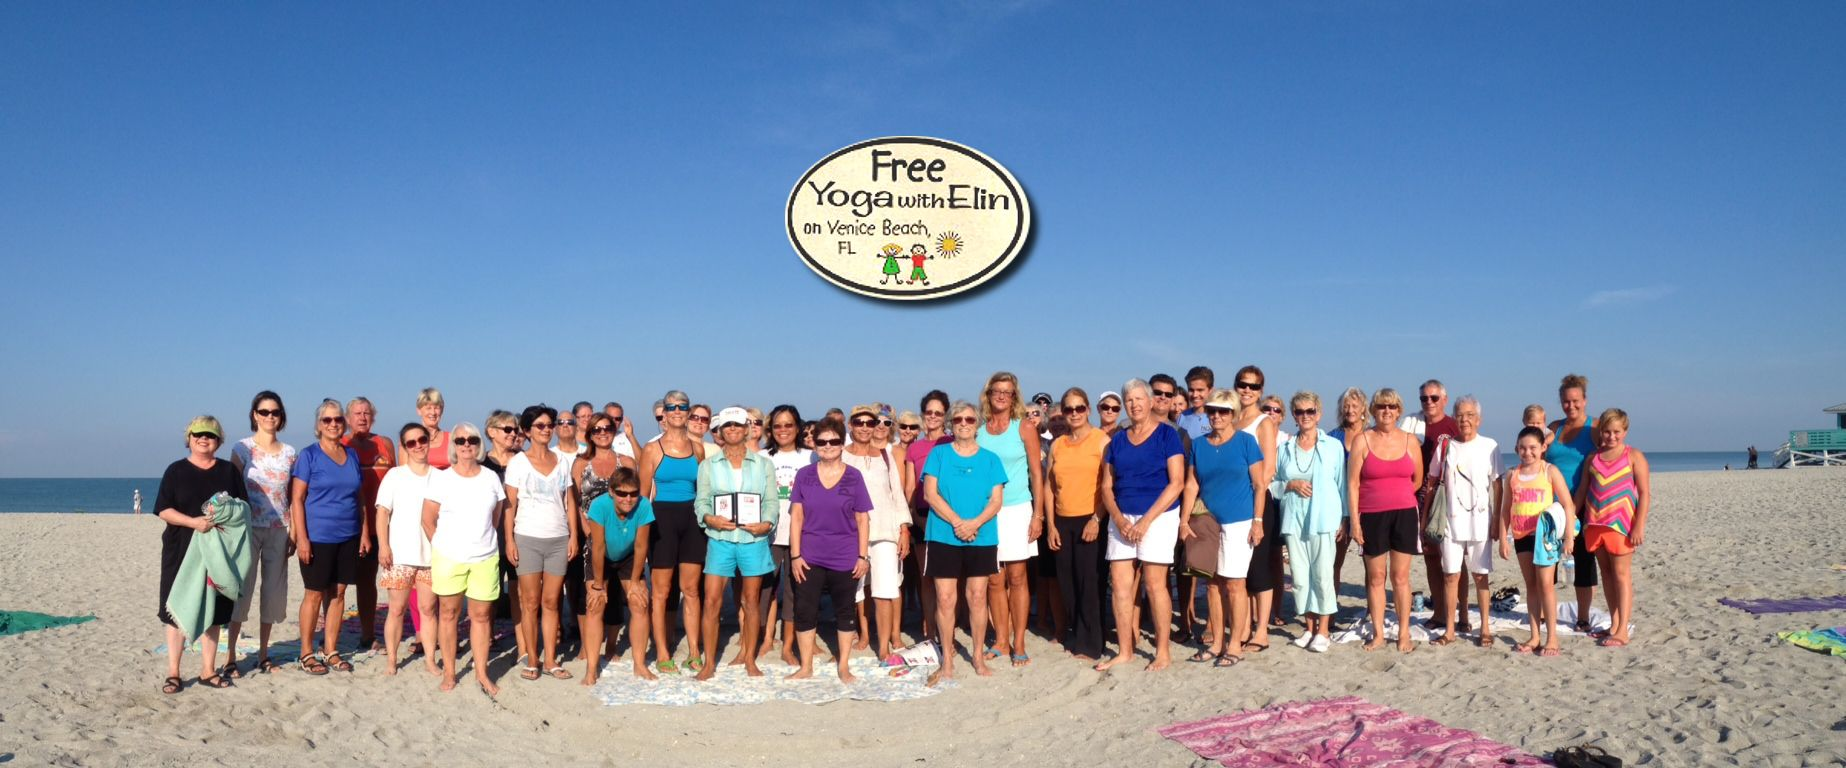 Free Yoga With Elin Balance Breathe Strengthen And At The Same Time Relax On Venice Beach Florida This Is Focus Of